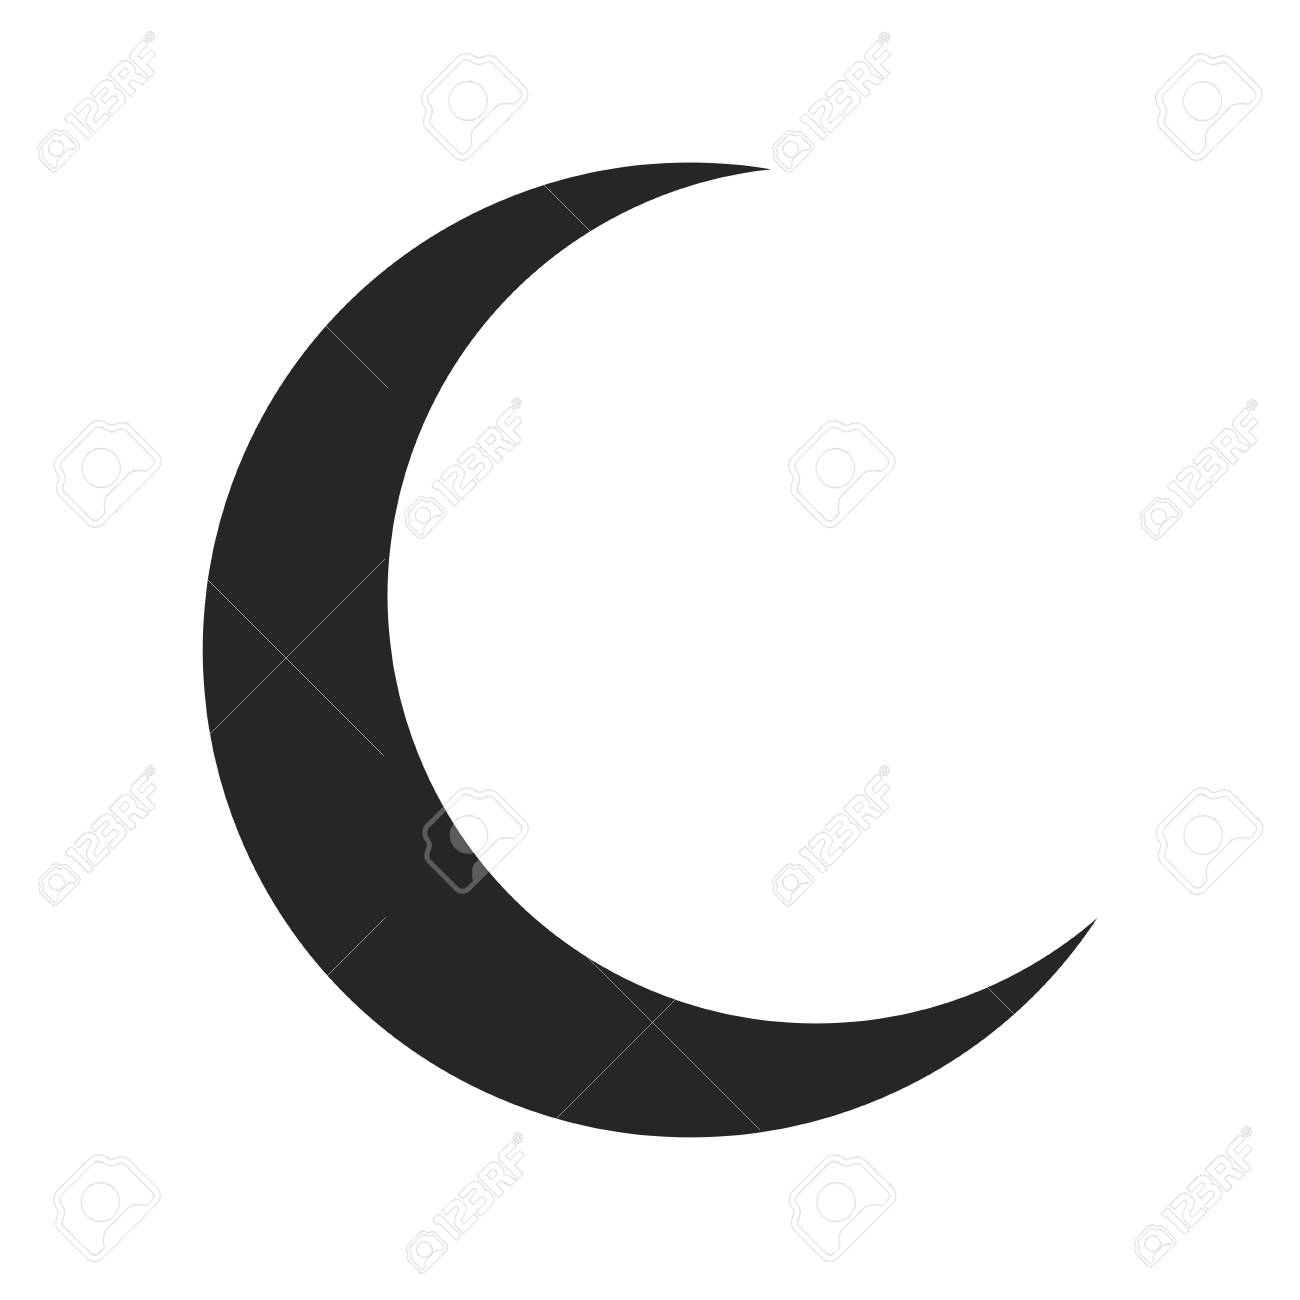 Crescent moon silhouette vector symbol icon design beautiful crescent moon silhouette vector symbol icon design beautiful illustration isolated on white background stock vector biocorpaavc Gallery